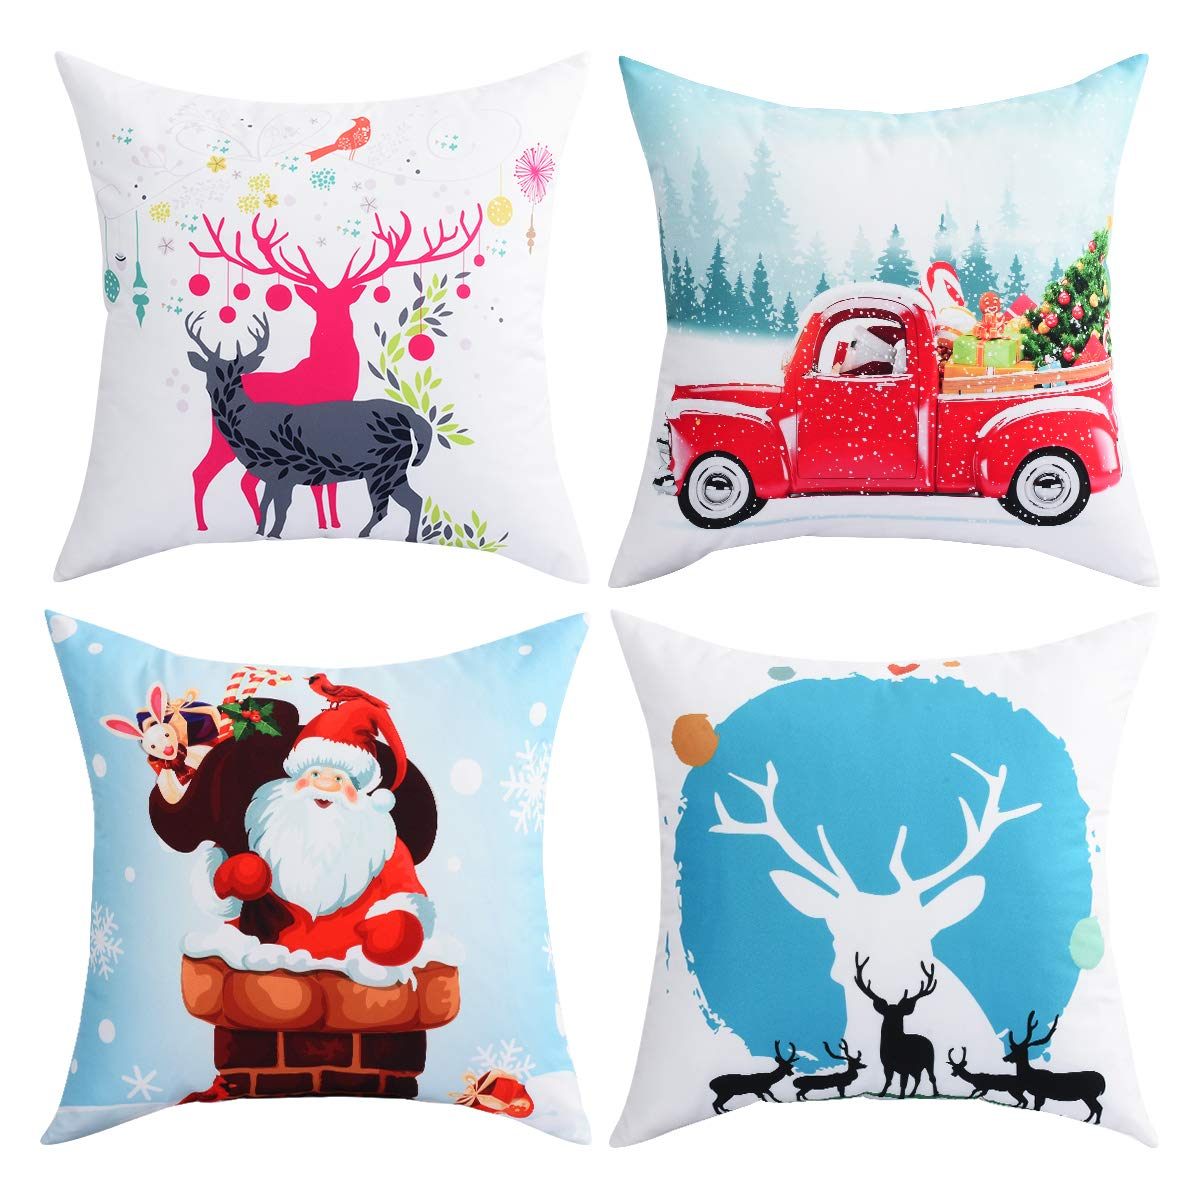 BLEUM CADE Pack of 4 Merry Christmas Decorative Sofa Throw Pillow Covers Case Daily Cushion Cover and Home Office Car